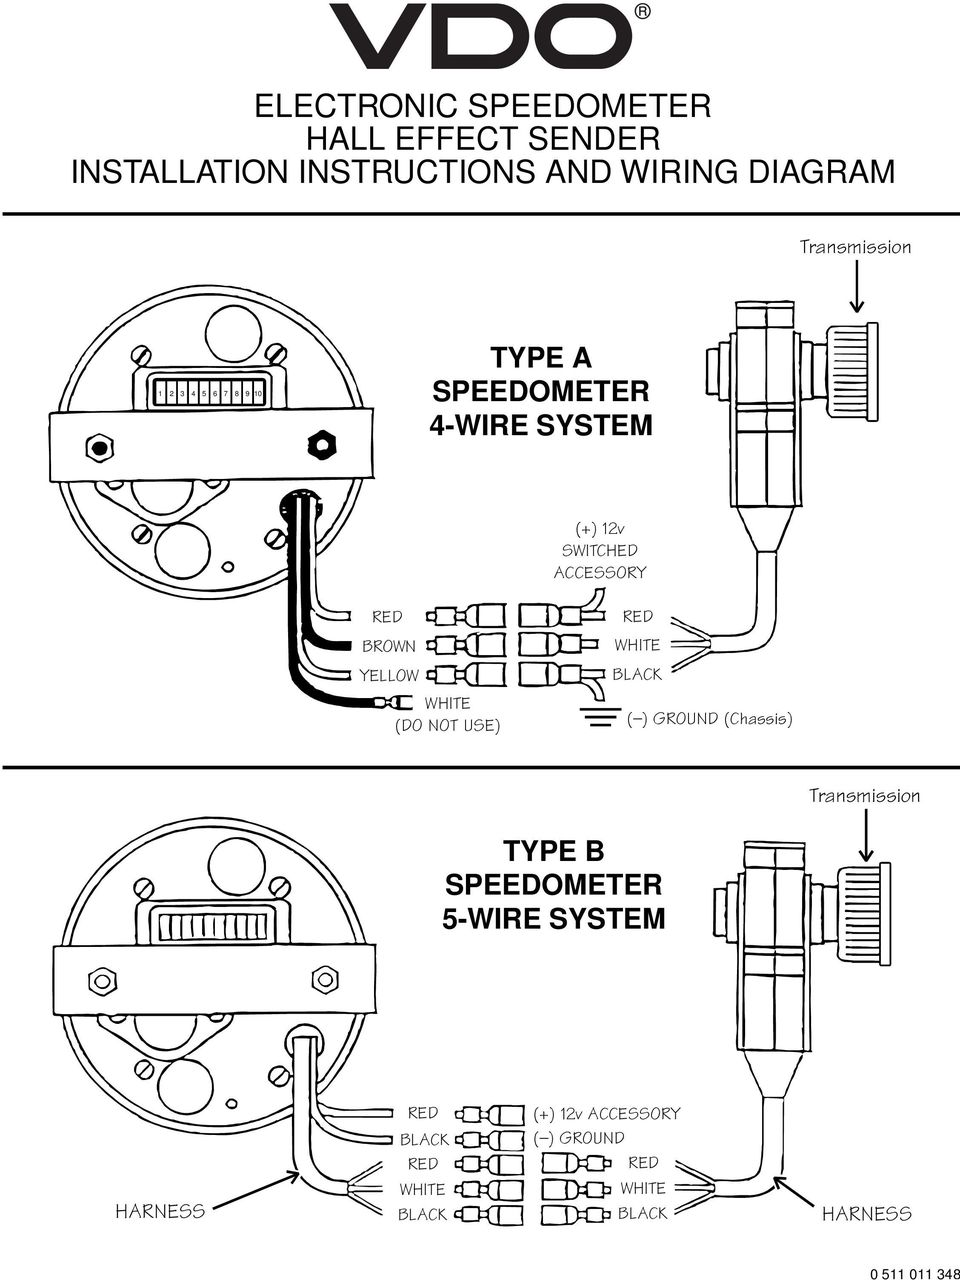 vdo electronic speedometer hall effect sender installation rh docplayer net vdo electronic speedo wiring diagram